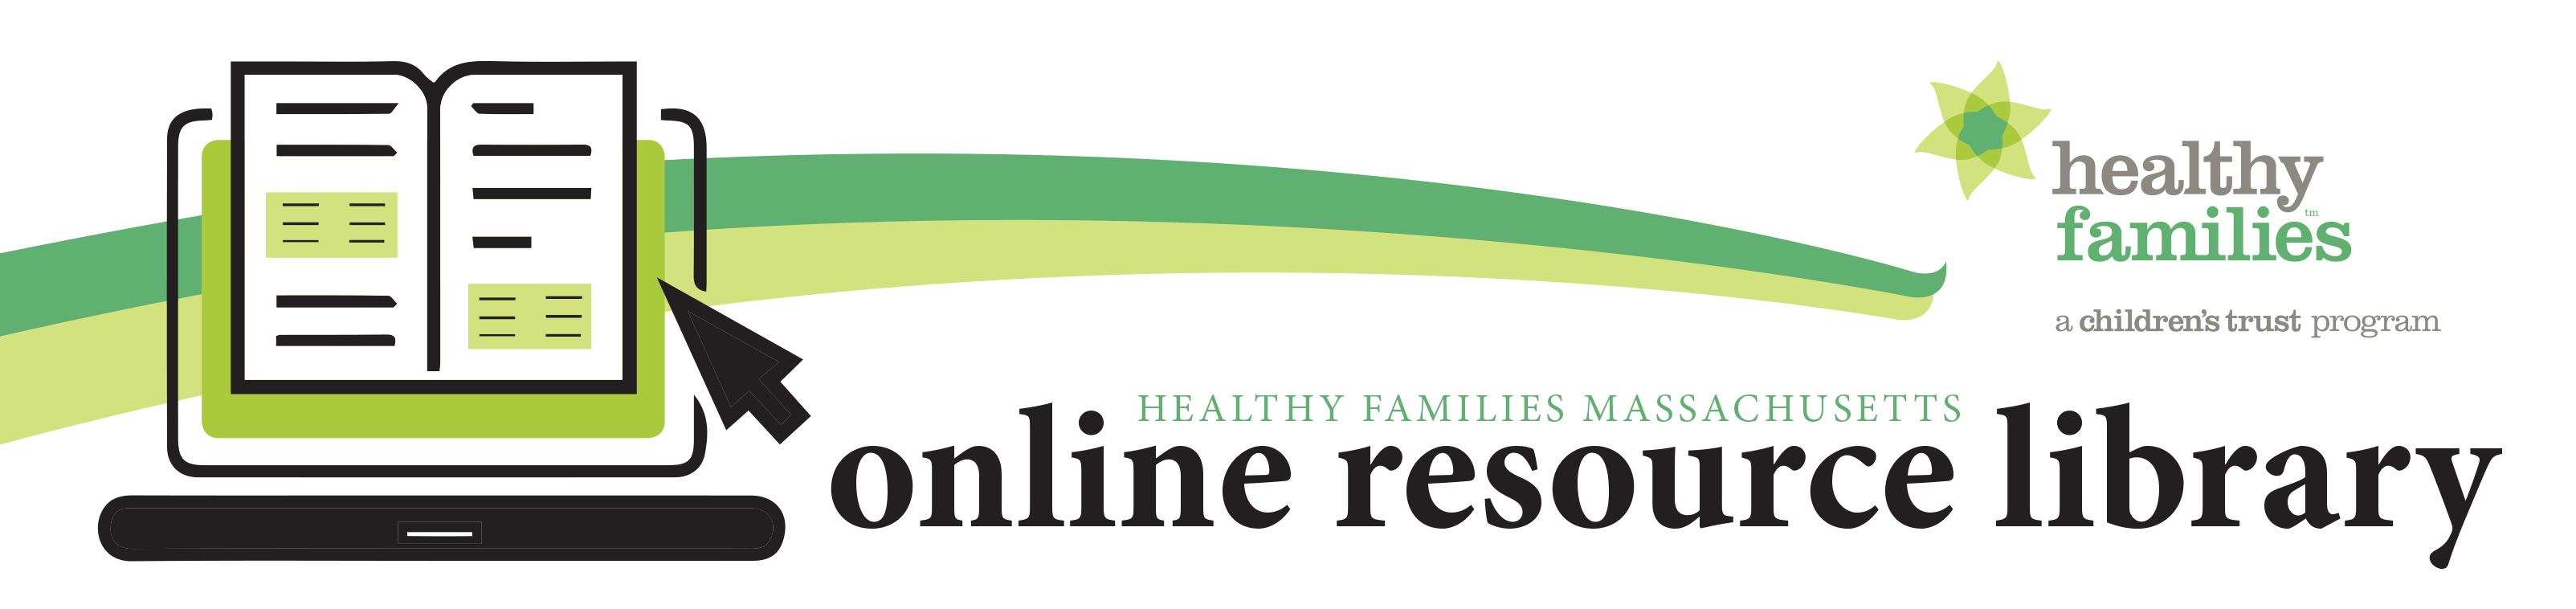 Healthy Families Online Resource Library